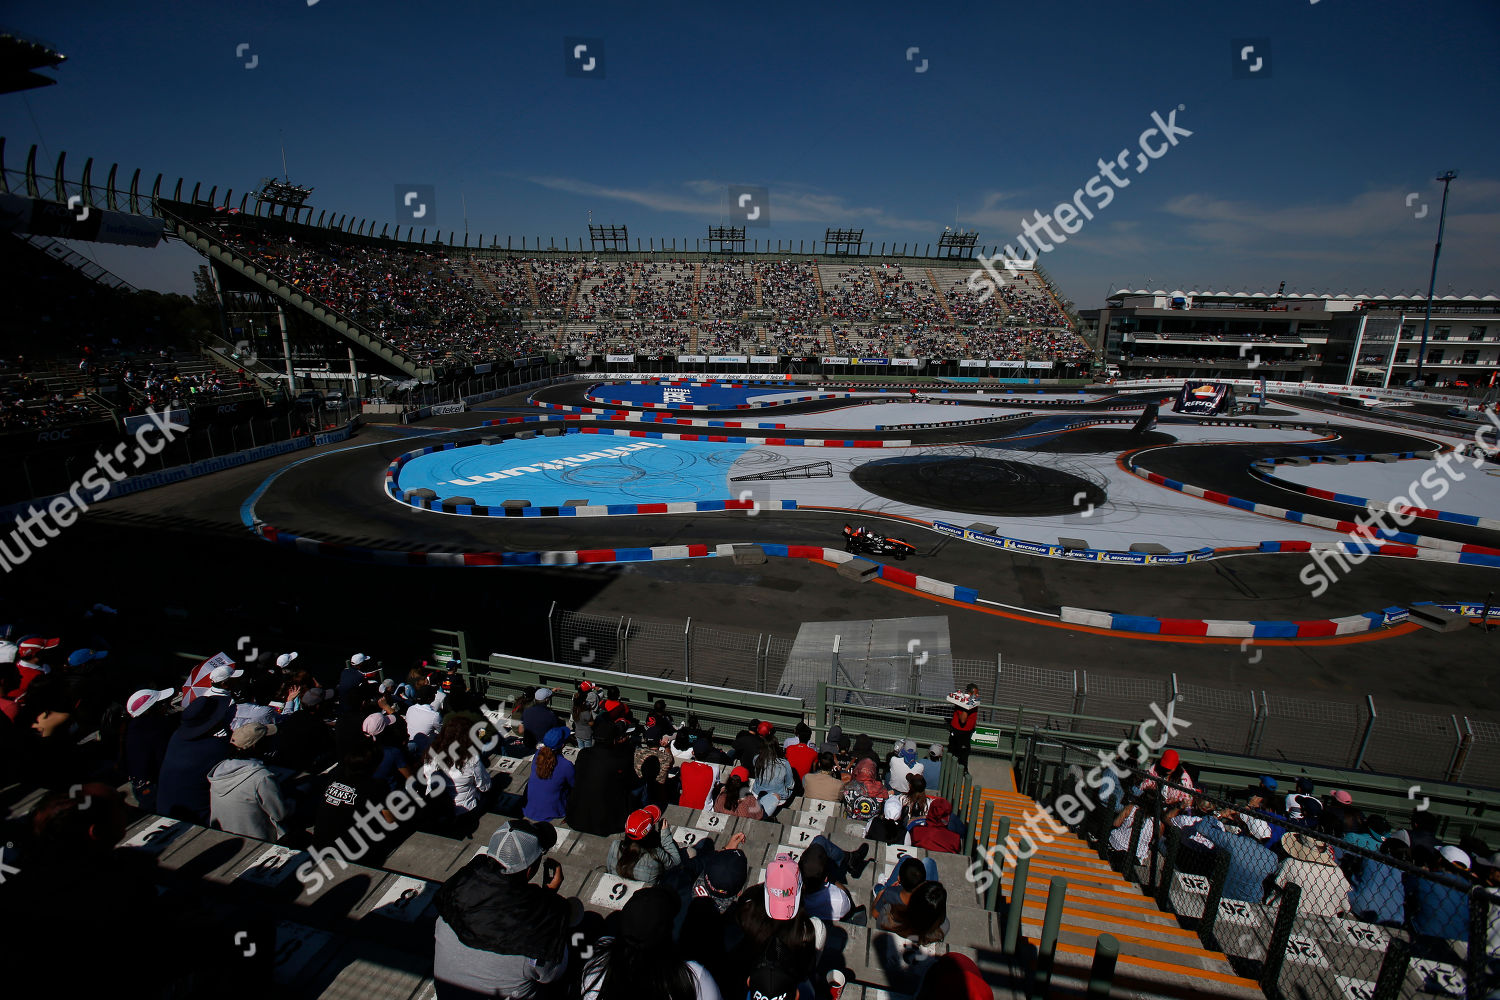 Spectators watch Race Champions Foro Sol Mexico Editorial